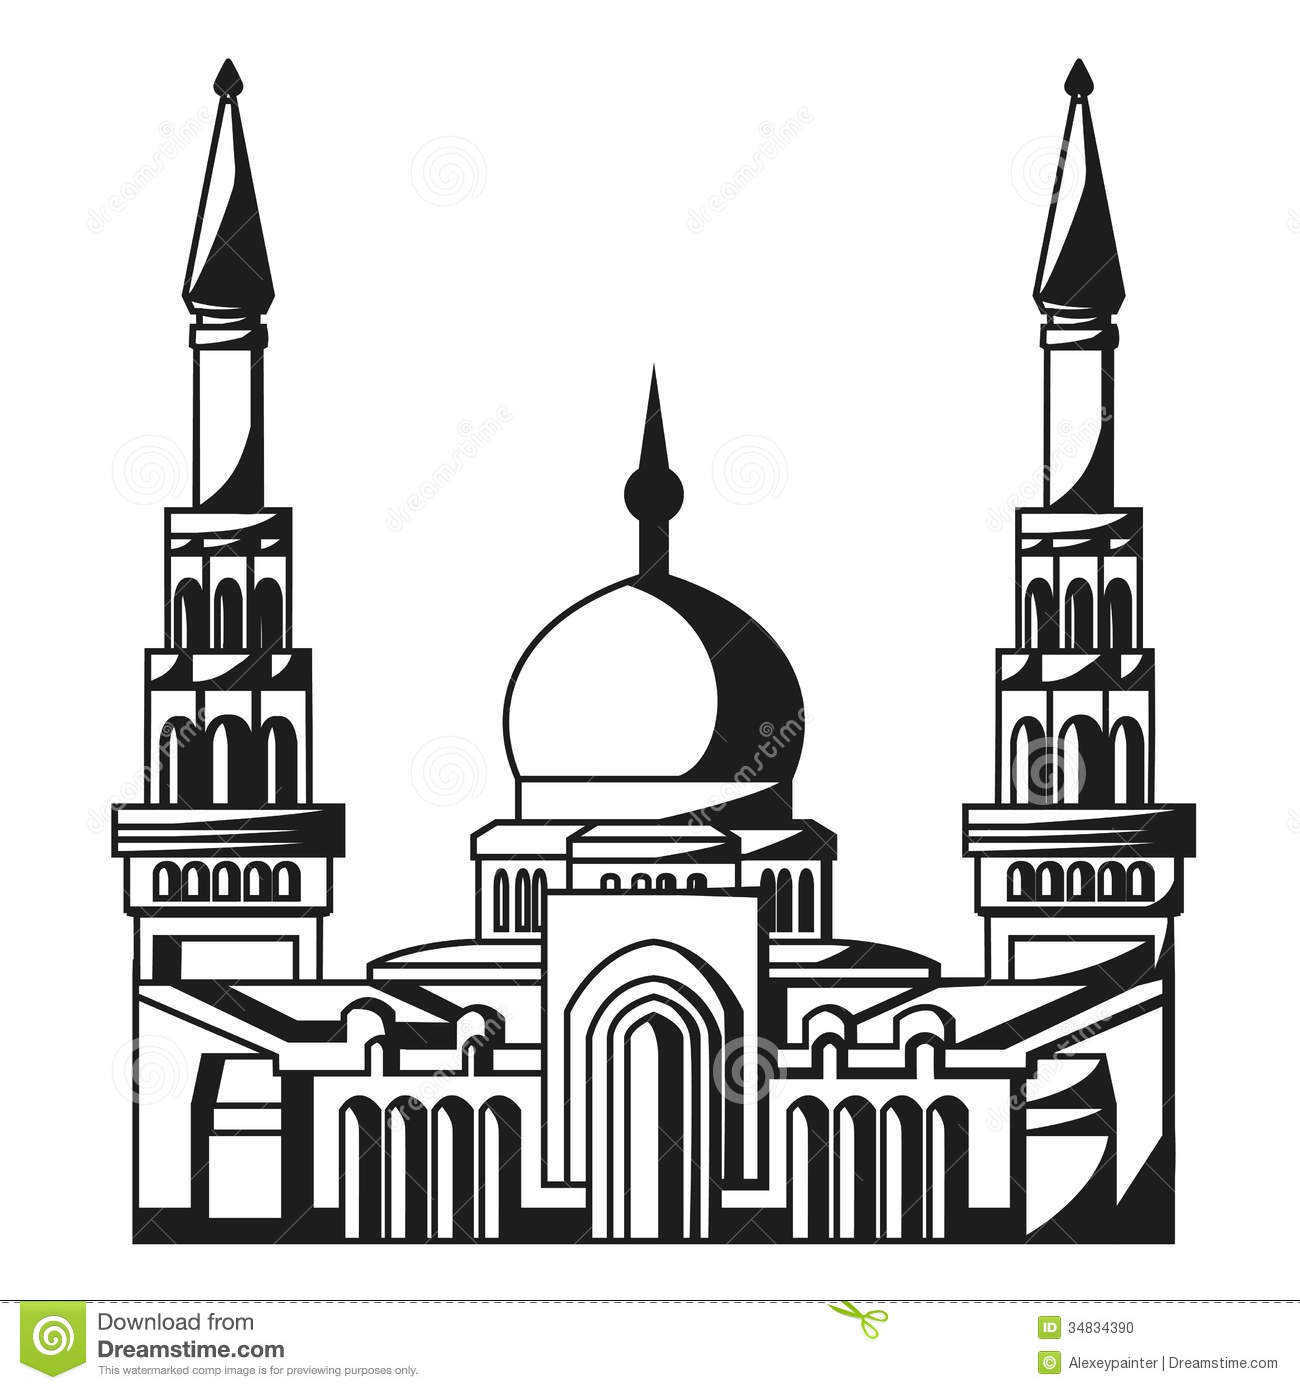 Mosque clipart black and white 4 » Clipart Station.